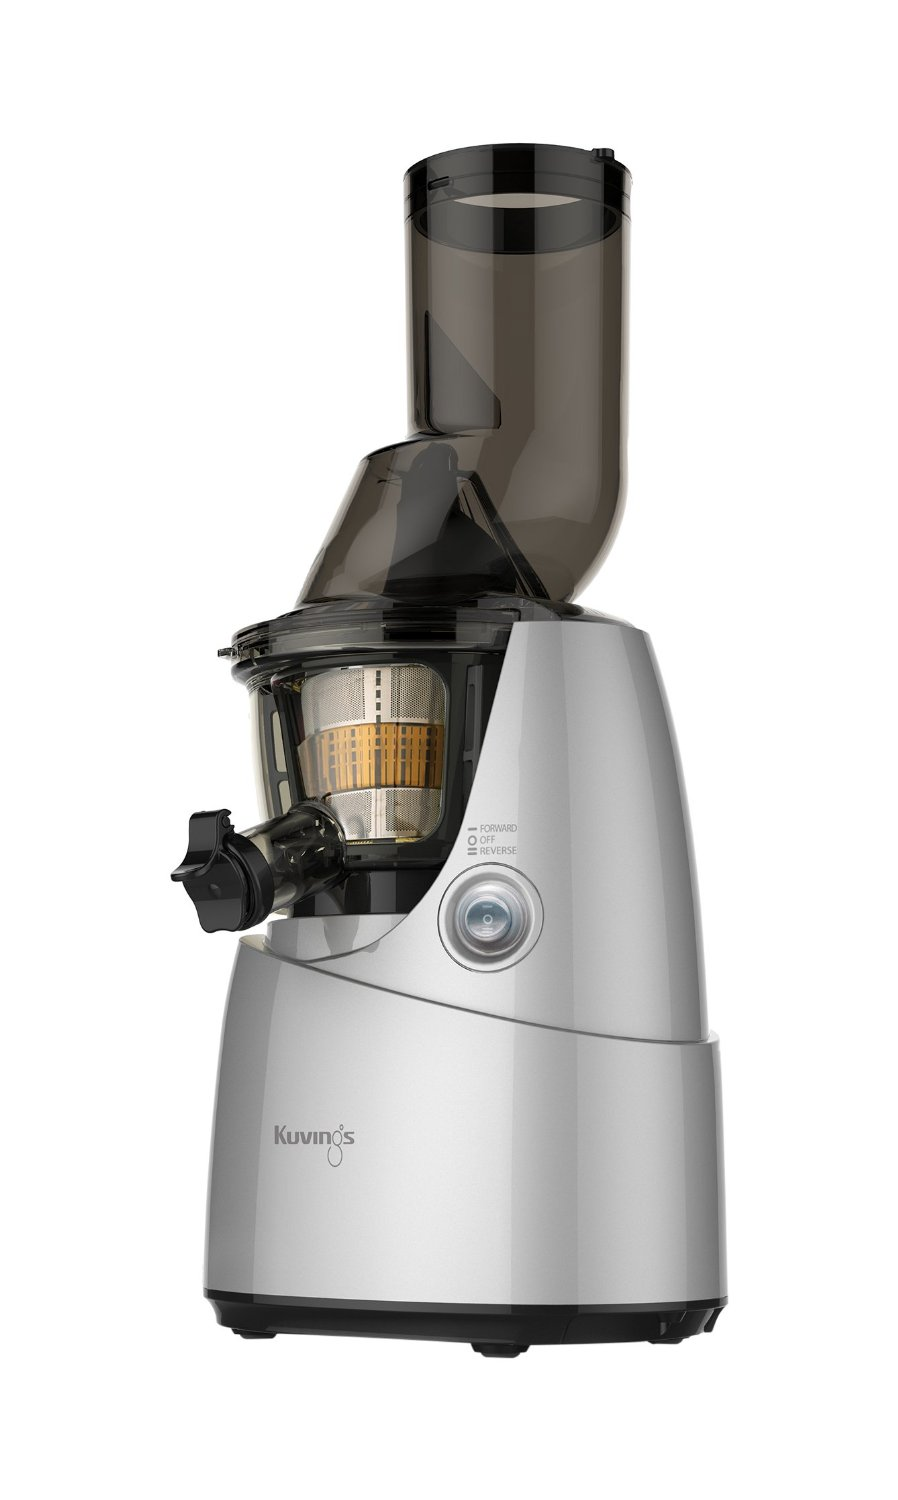 Breville Bjs600xl Fountain Crush Masticating Slow Juicer Vs Omega : Best juicer on the market - Love Low FatLove Low Fat